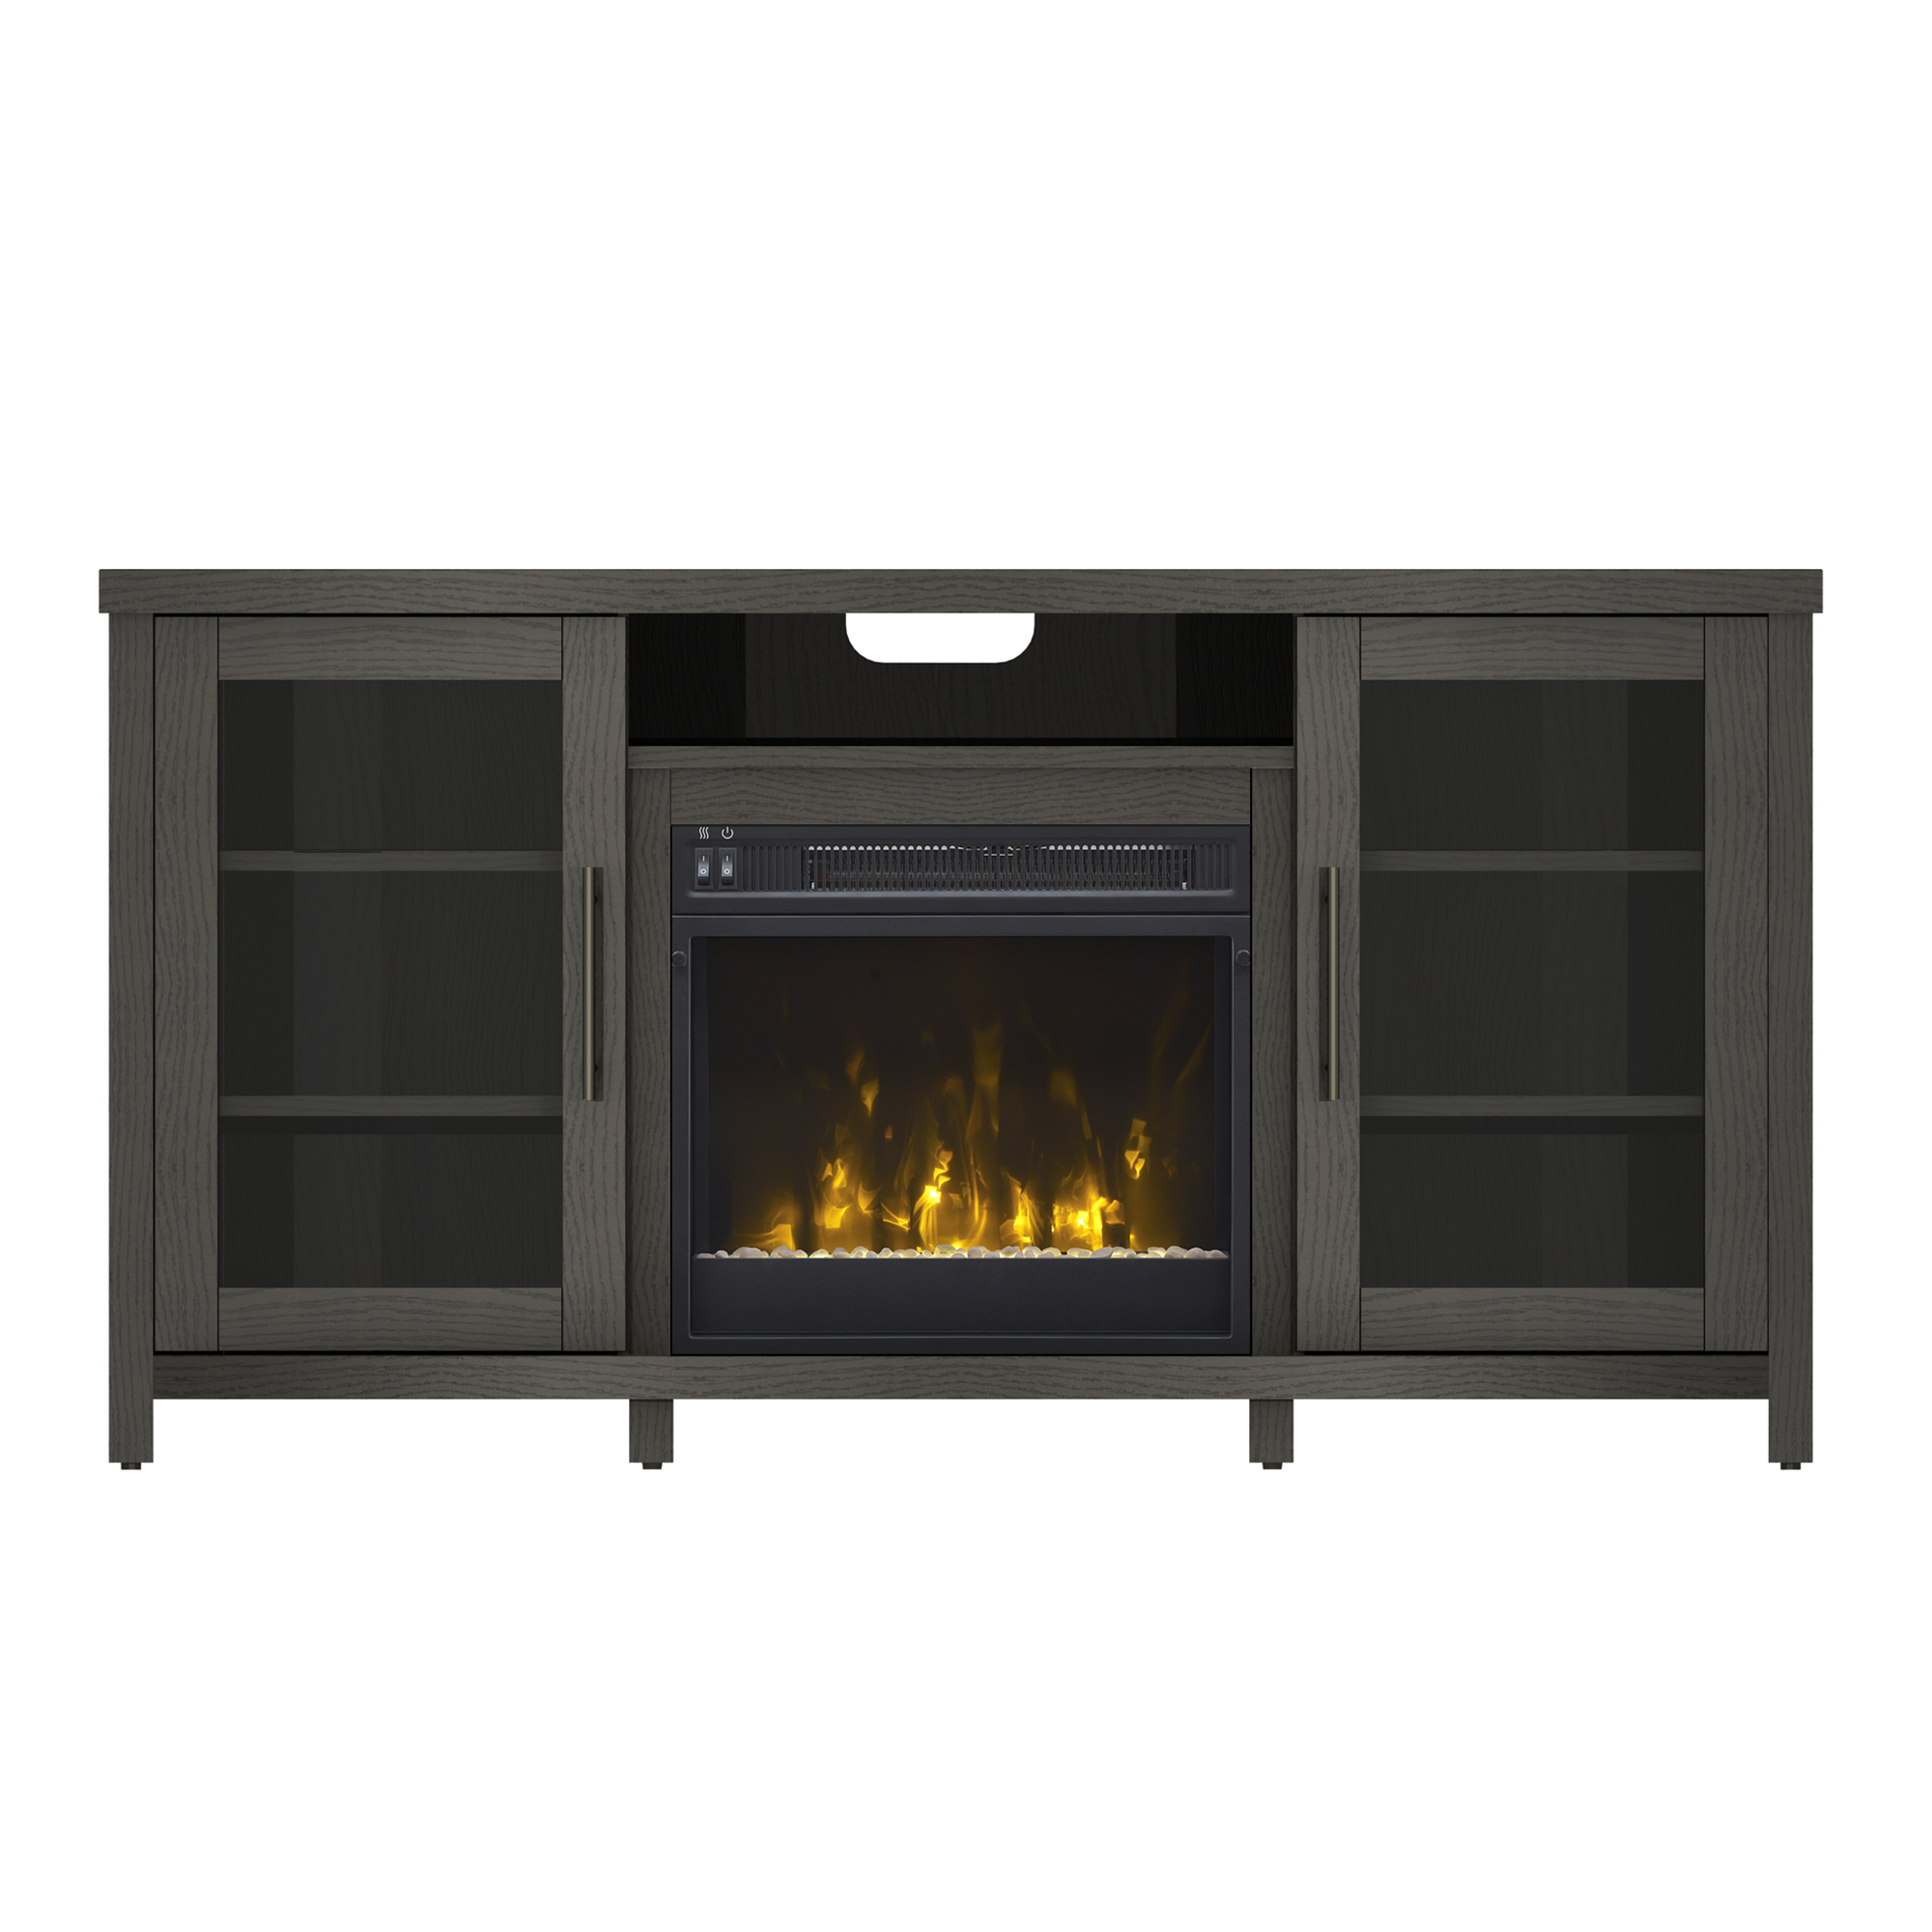 """Well Liked Herington Tv Stands For Tvs Up To 60"""" Pertaining To Rossville Tv Stand For Tvs Up To 60"""" With Electric (View 12 of 20)"""